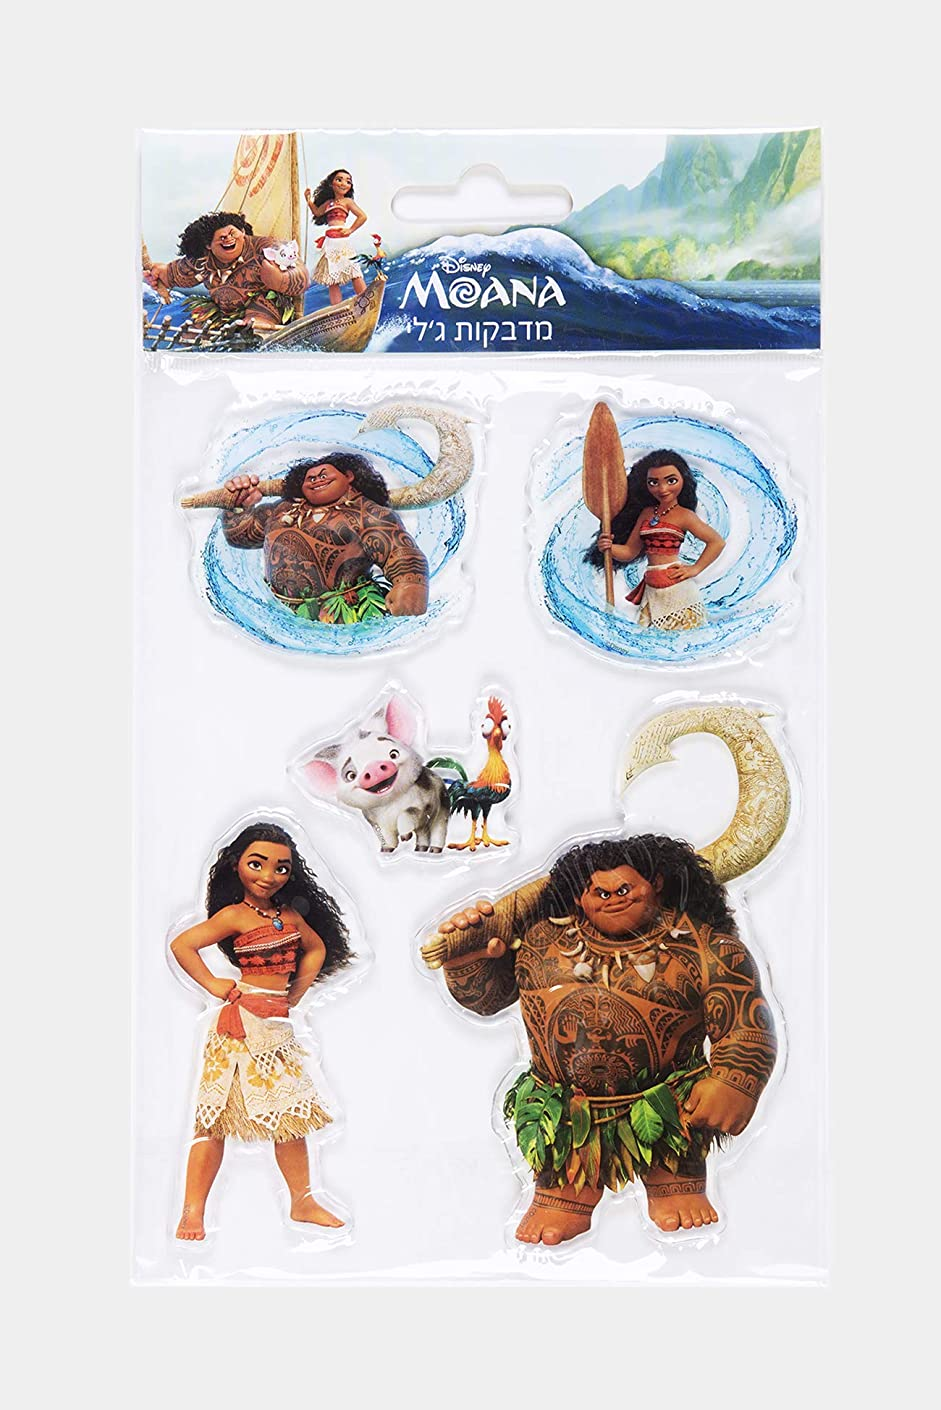 Disney Beautifully Illustrated Princess Moana and Friends Jelly Removable Stickers Princesses Collection - Great As Prizes and Awards